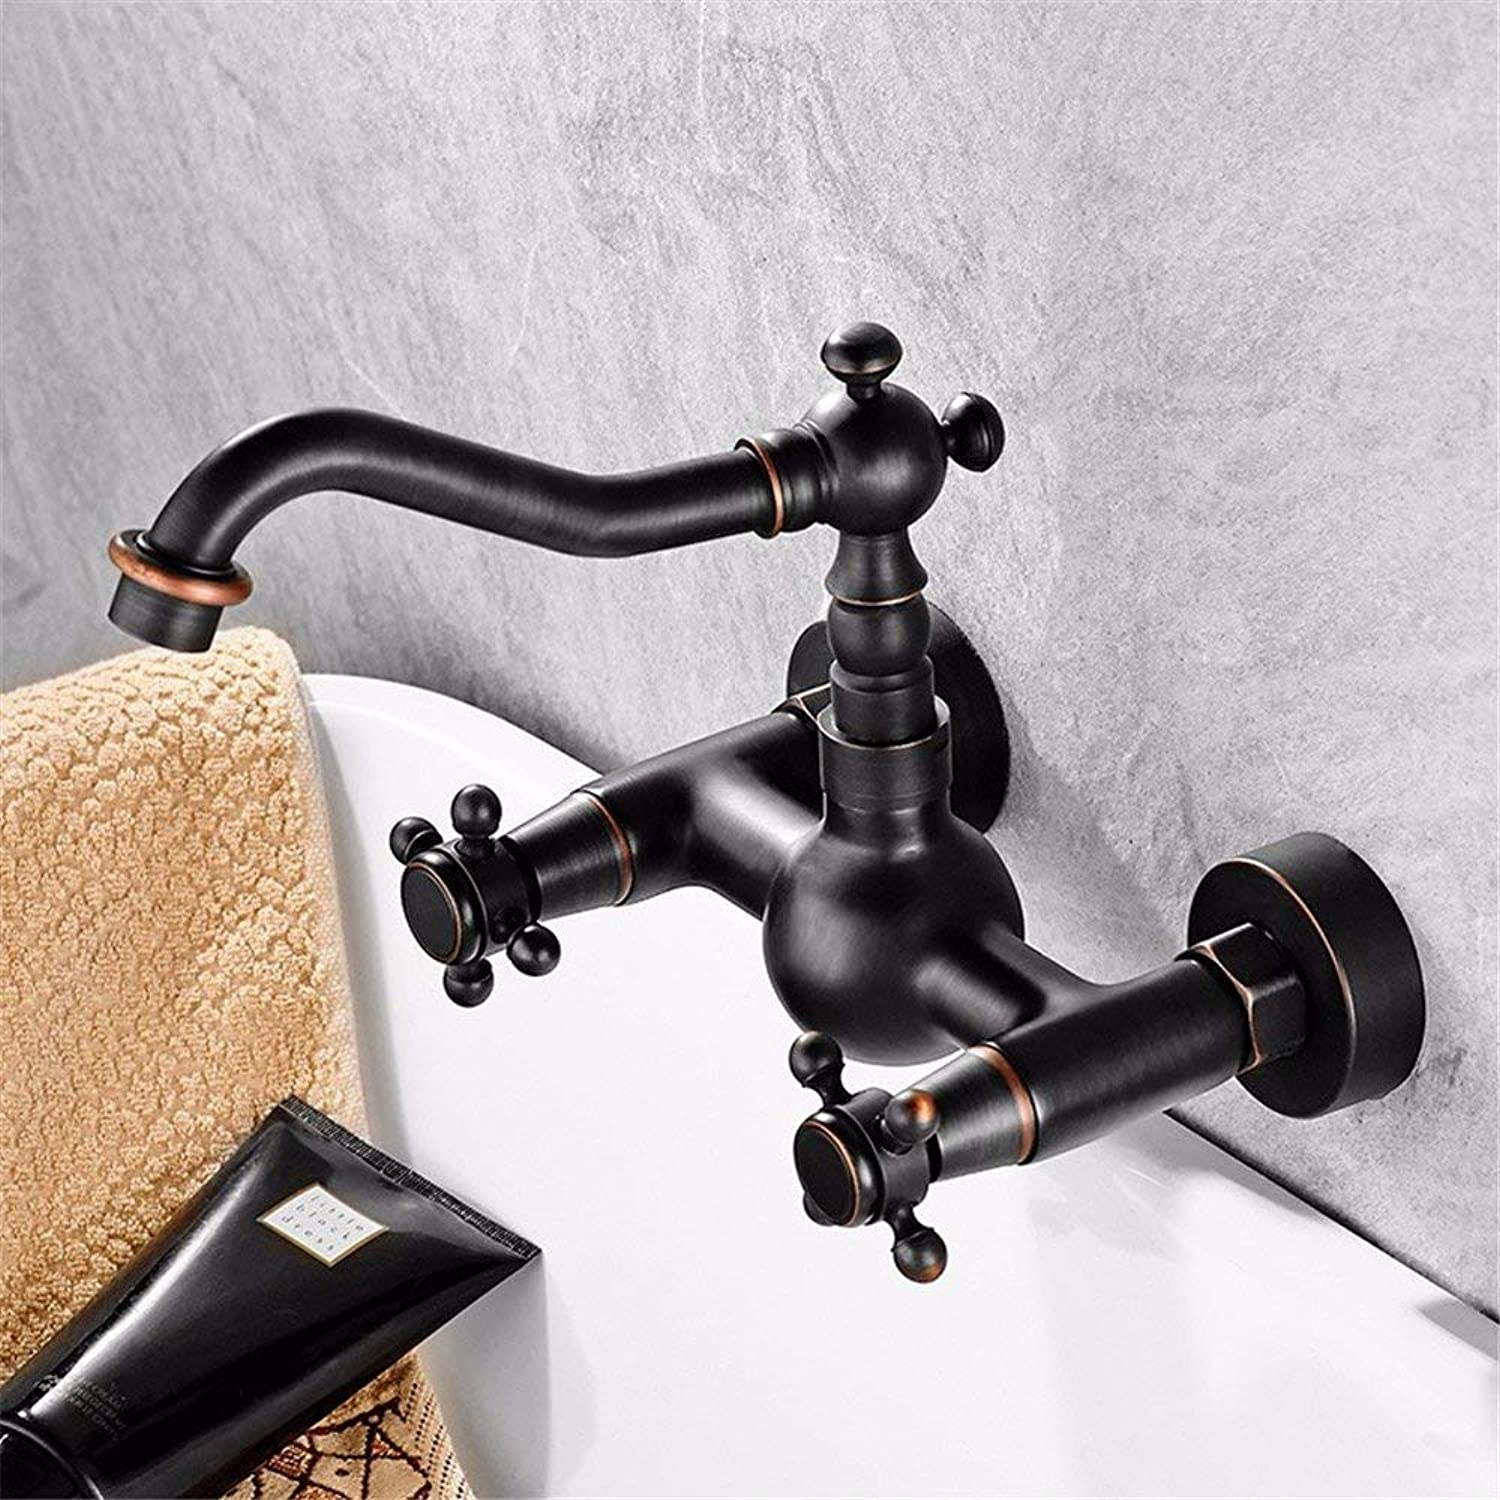 Oudan Kitchen bathroom copper black bronze wall faucet hot and cold wall mounted kitchen bronze wall faucet (color   -, Size   -)